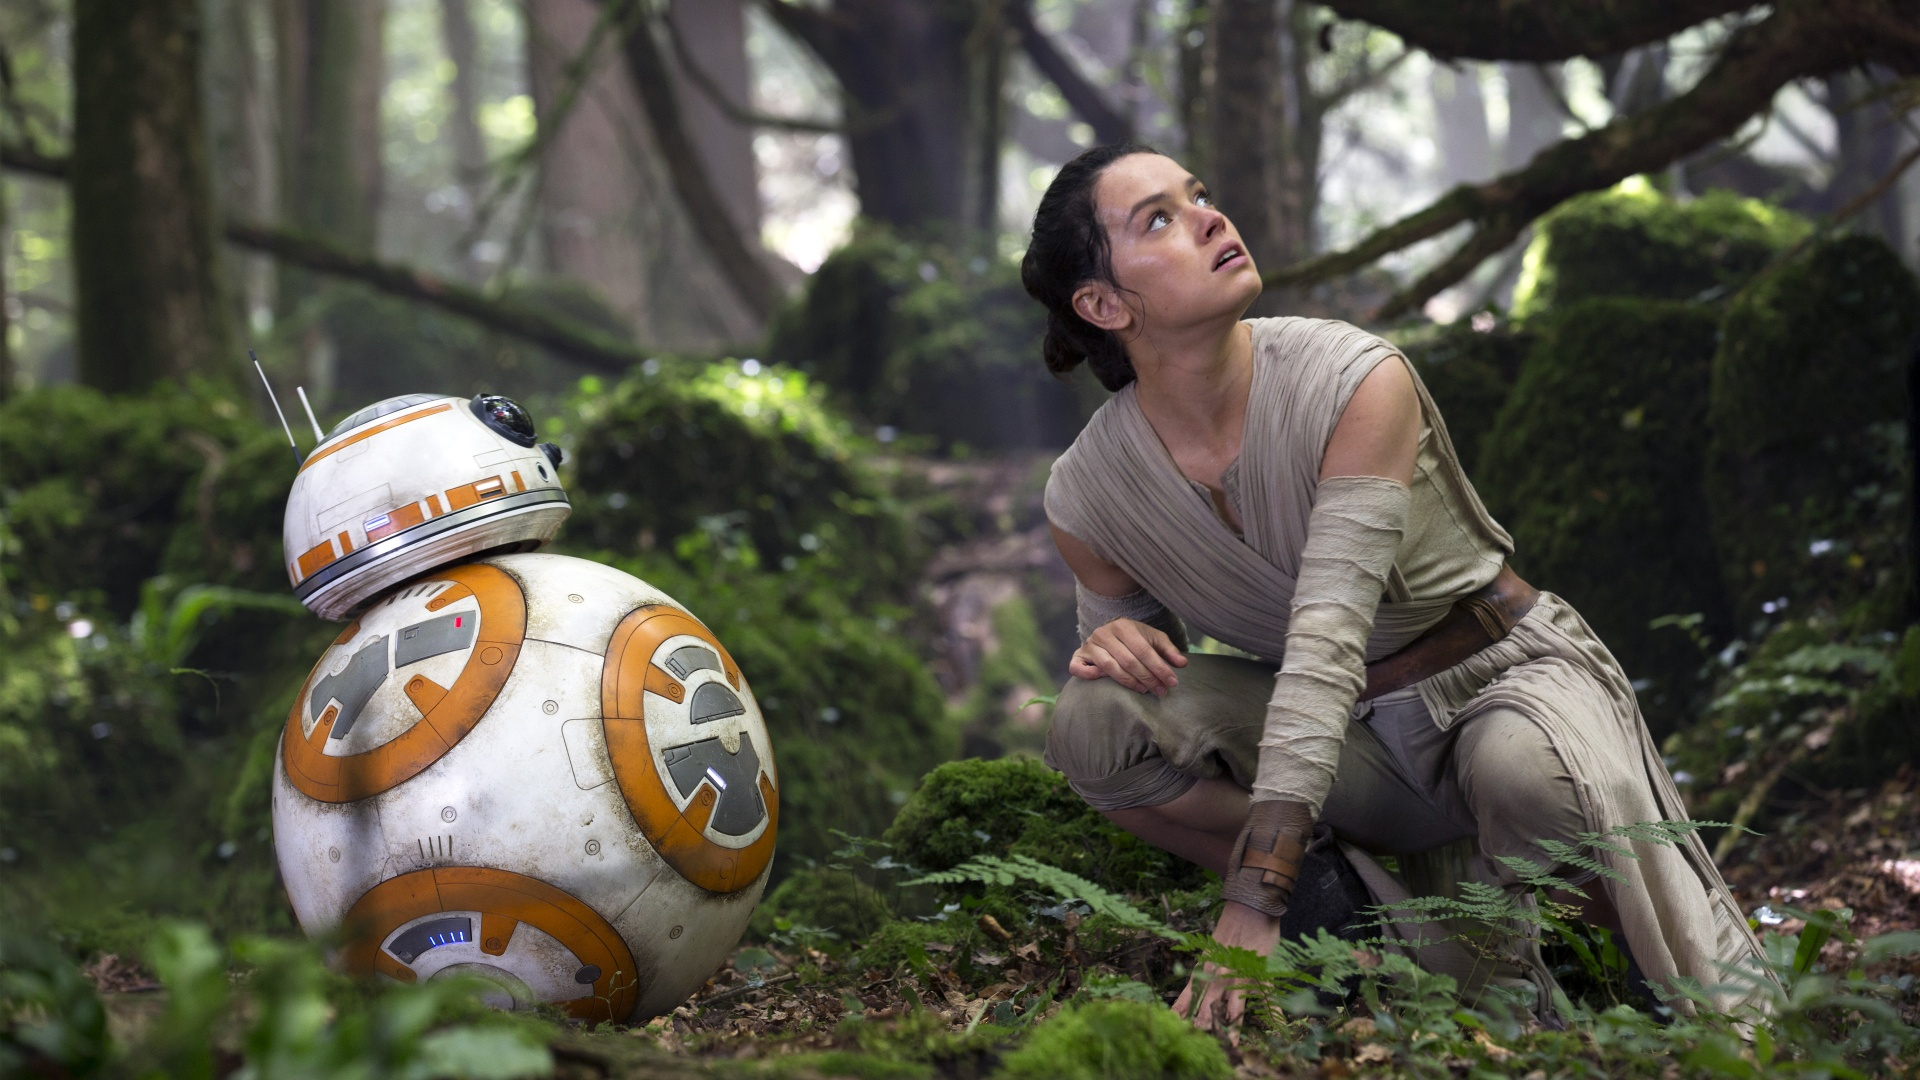 Star Wars The Force Awakens R2 D2 Rey Wallpapers HD Wallpapers 1920x1080